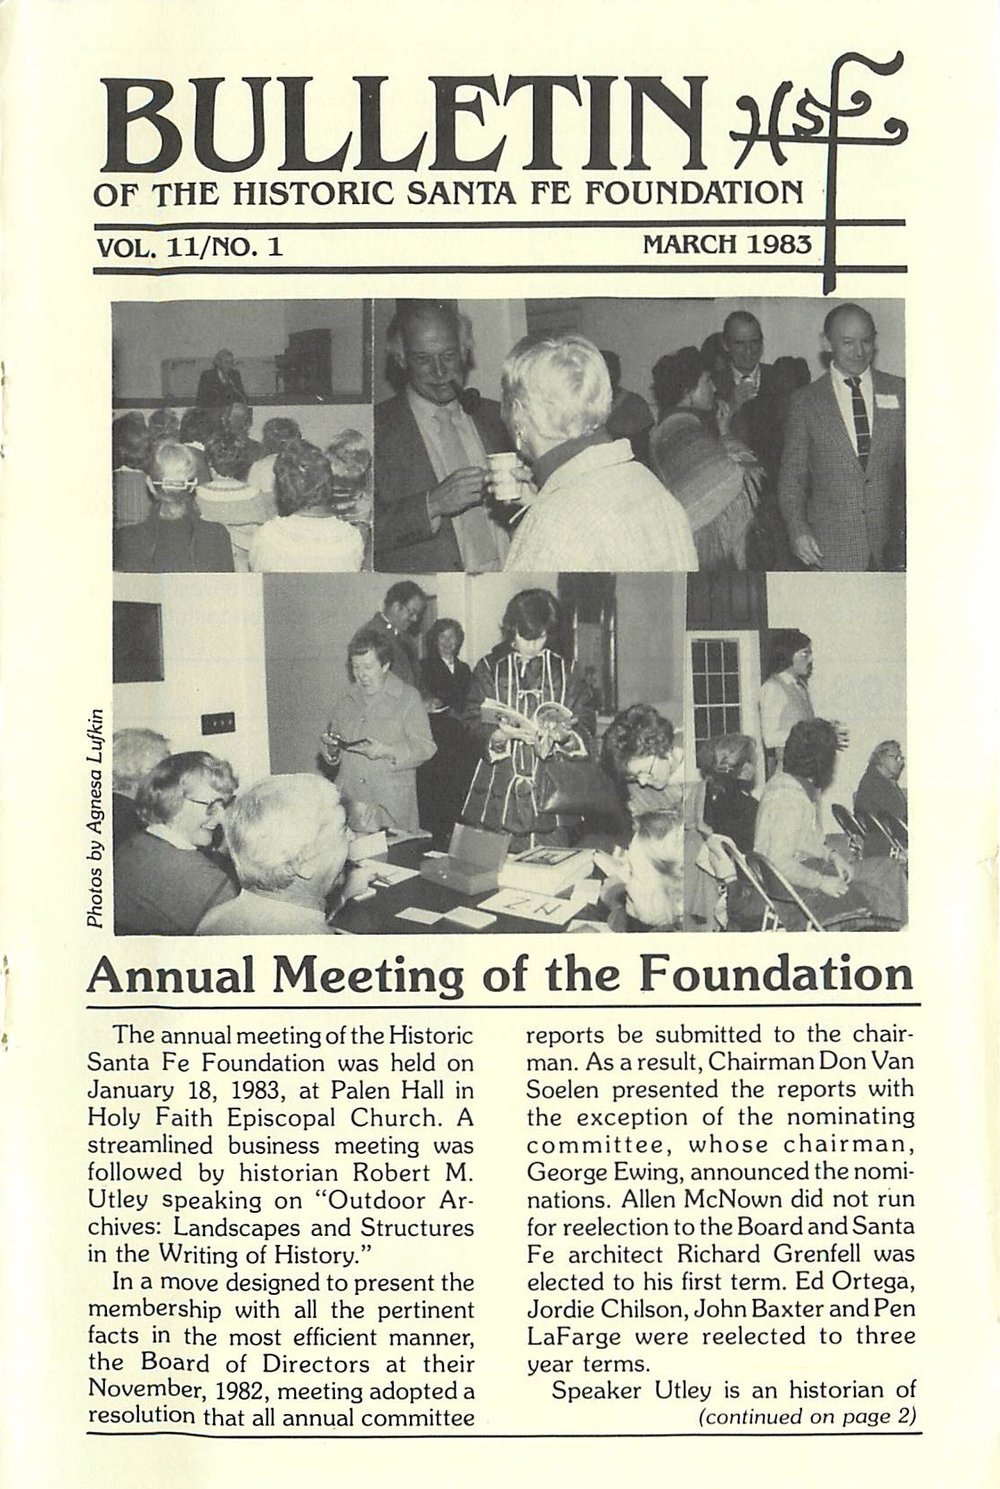 1983 HSFF Bulletin Vol.11 No.1 Cover